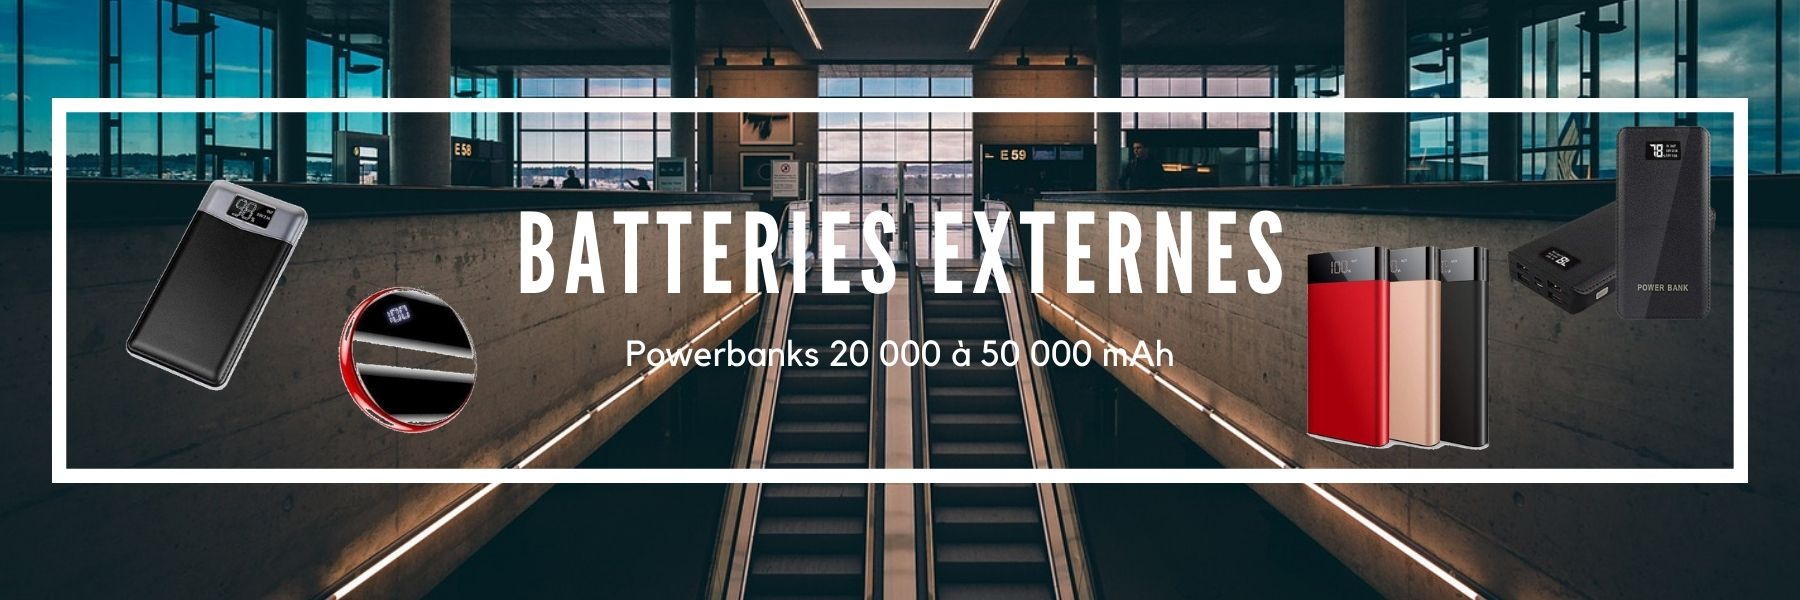 Batteries externes